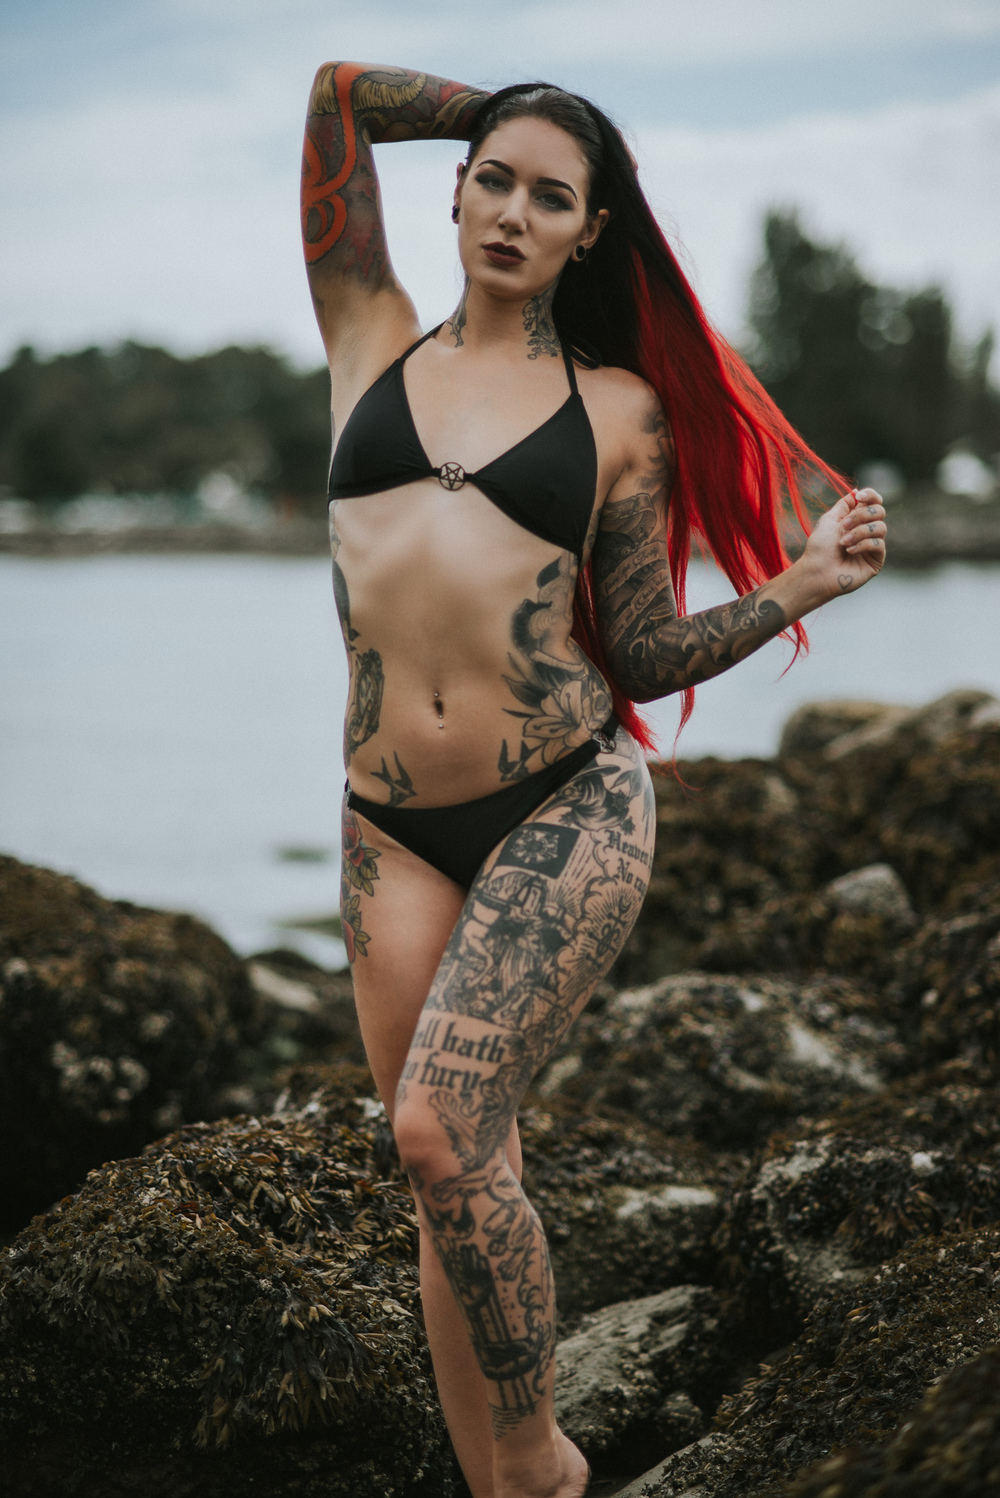 2016-22-17_Cervena_Fox-Timothy_Nguyen (8 of 10).jpg